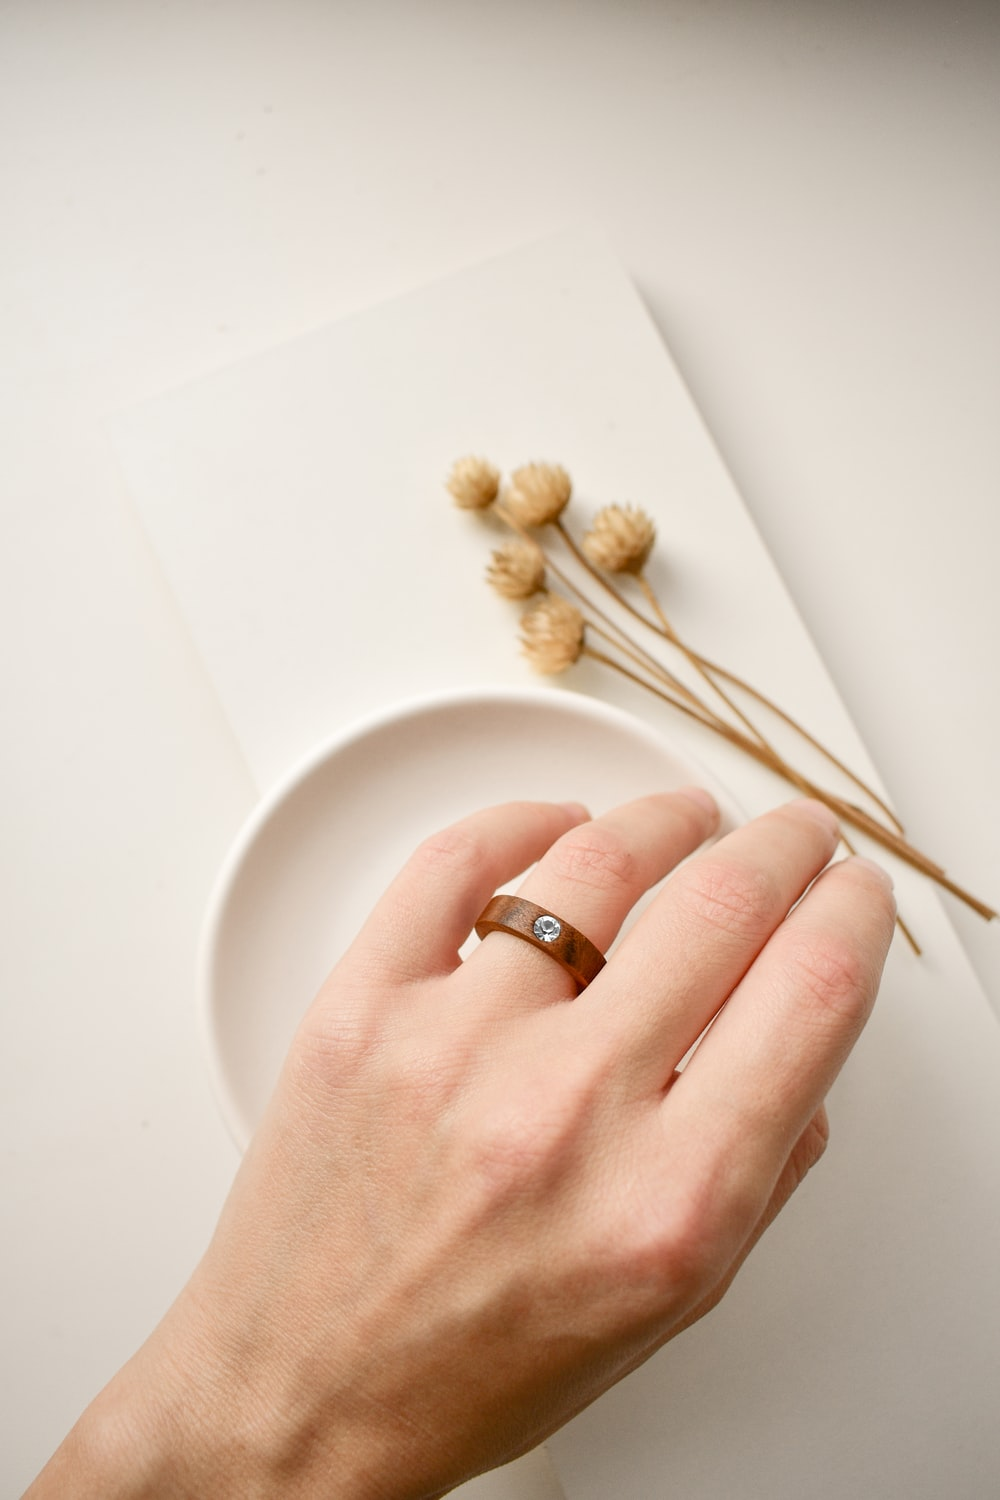 person wearing gold wedding band holding white ceramic plate